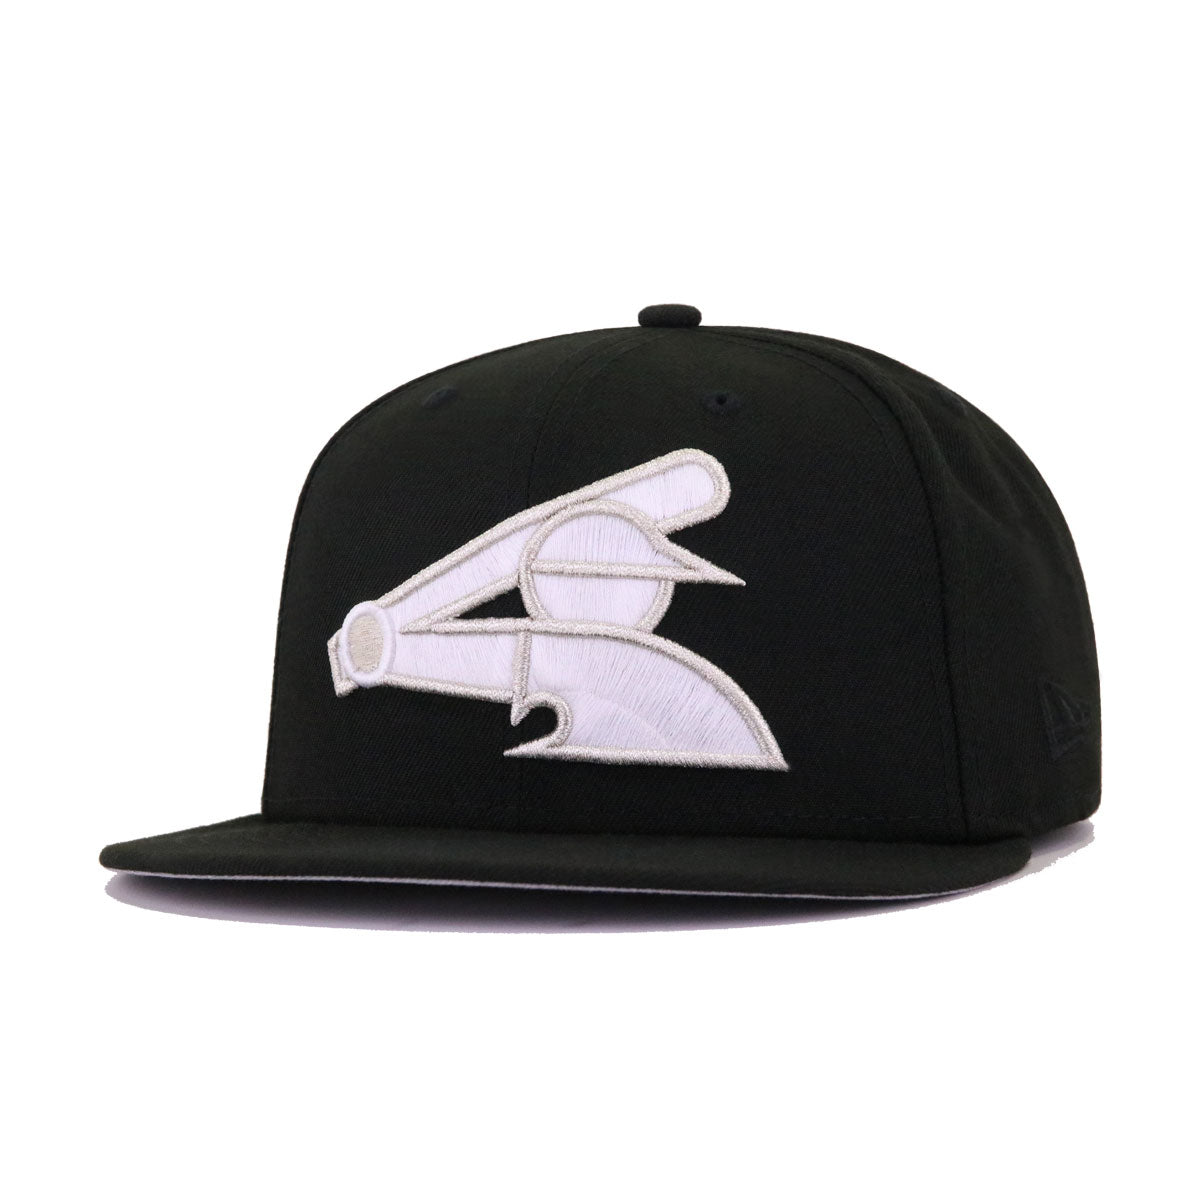 Chicago White Sox Black Batting Practice New Era 59Fifty Fitted